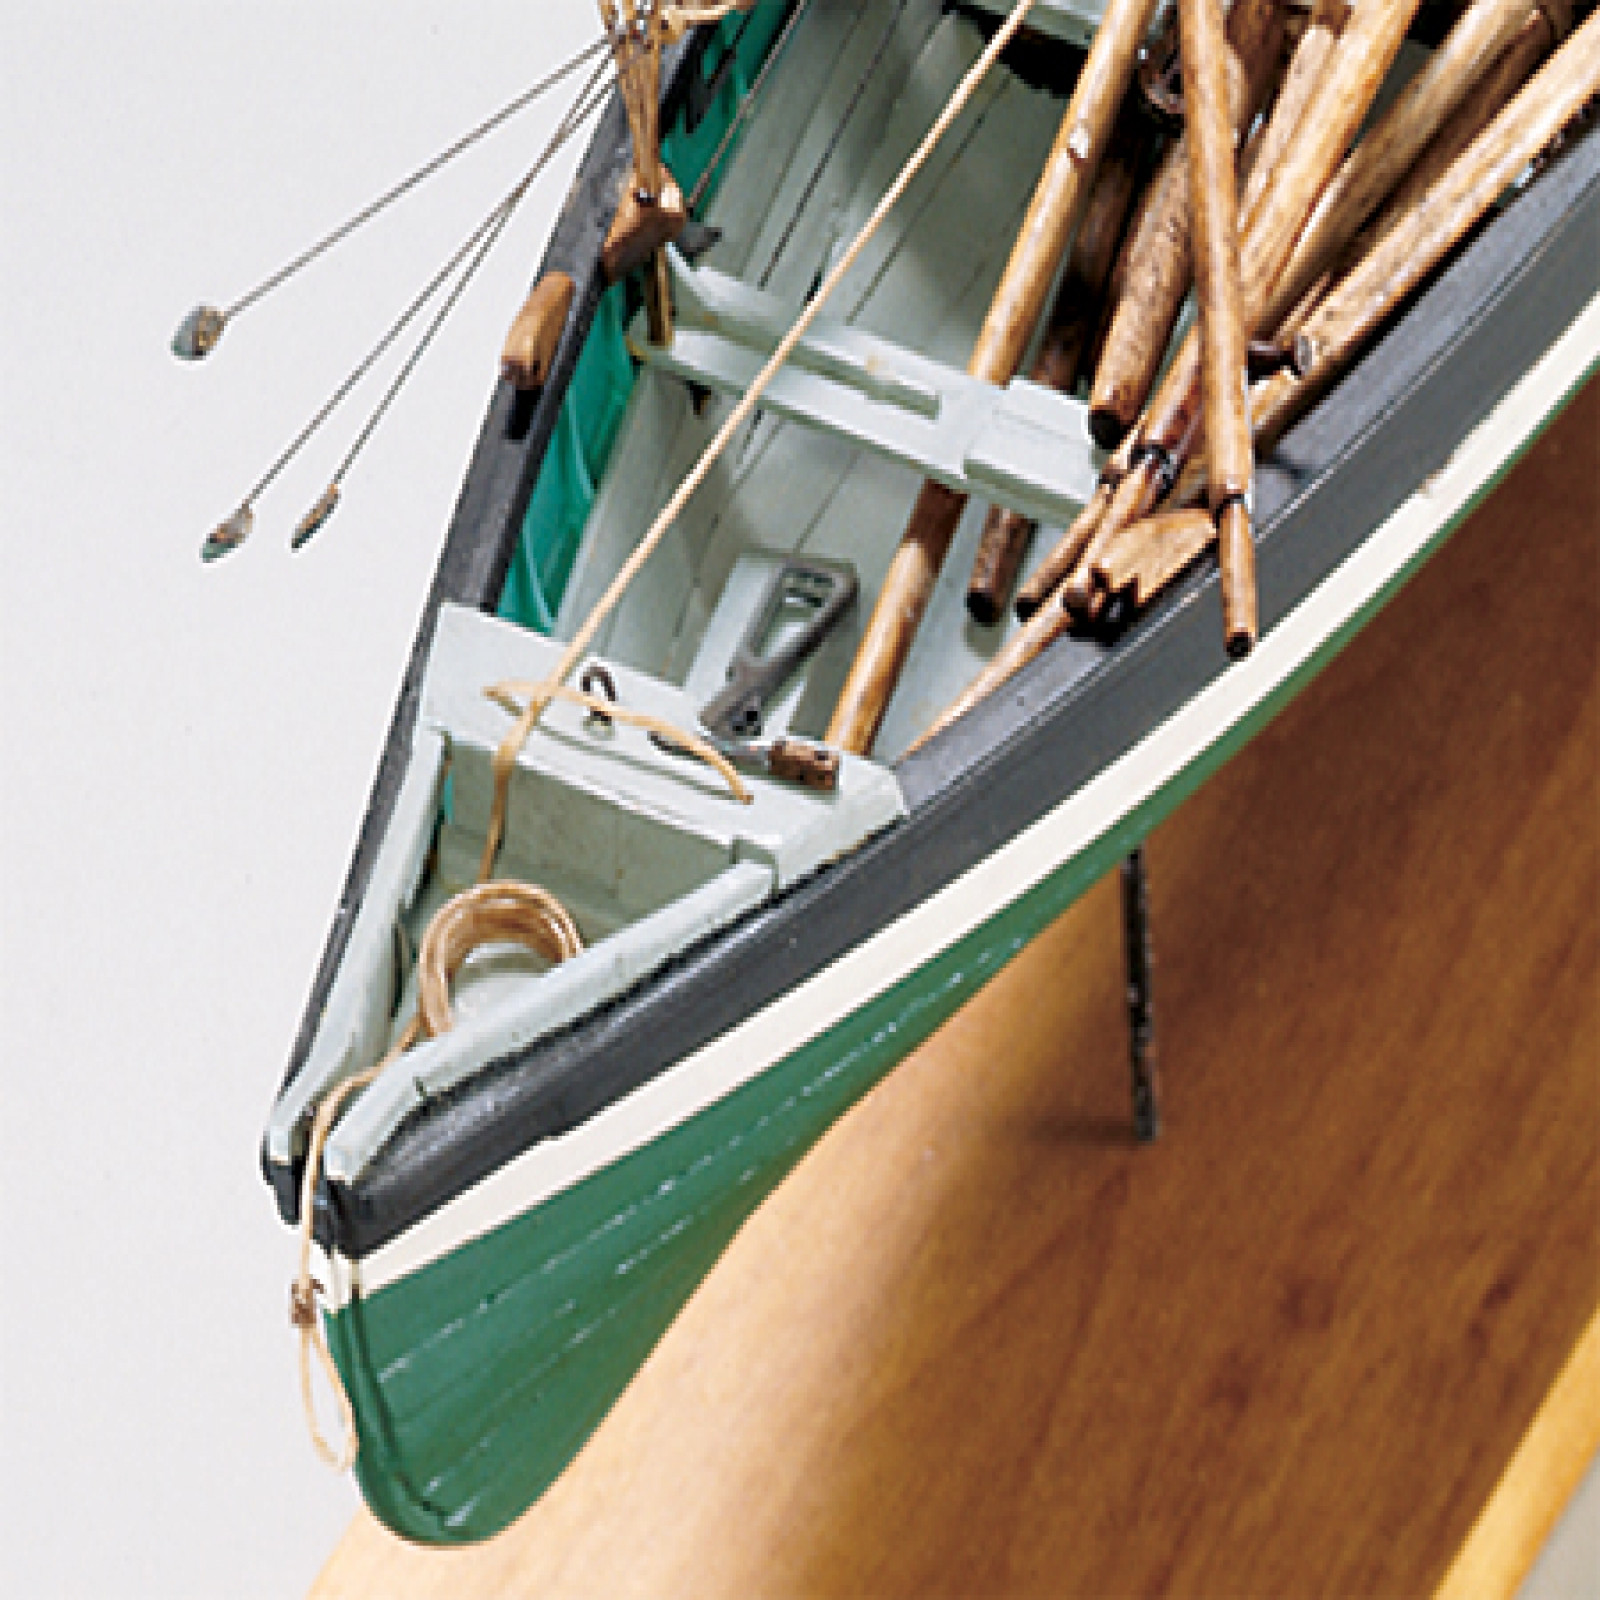 Model Expo NEW BEDFORD WHALEBOAT 1:16 SCALE